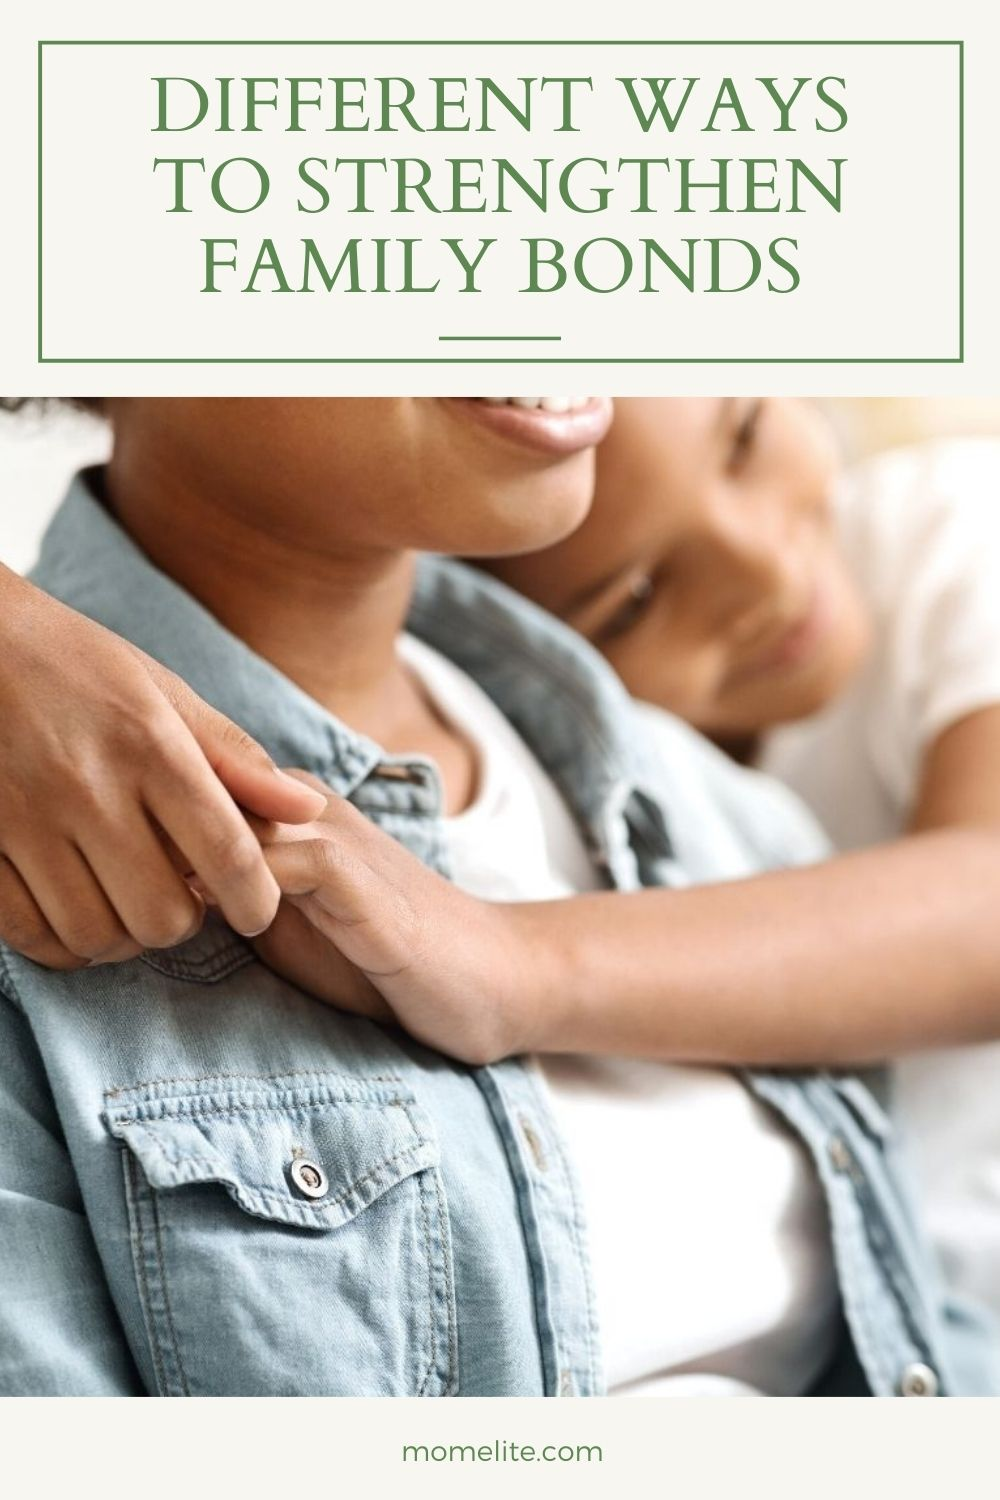 DIFFERENT WAYS TO STRENGTHEN FAMILY BONDS